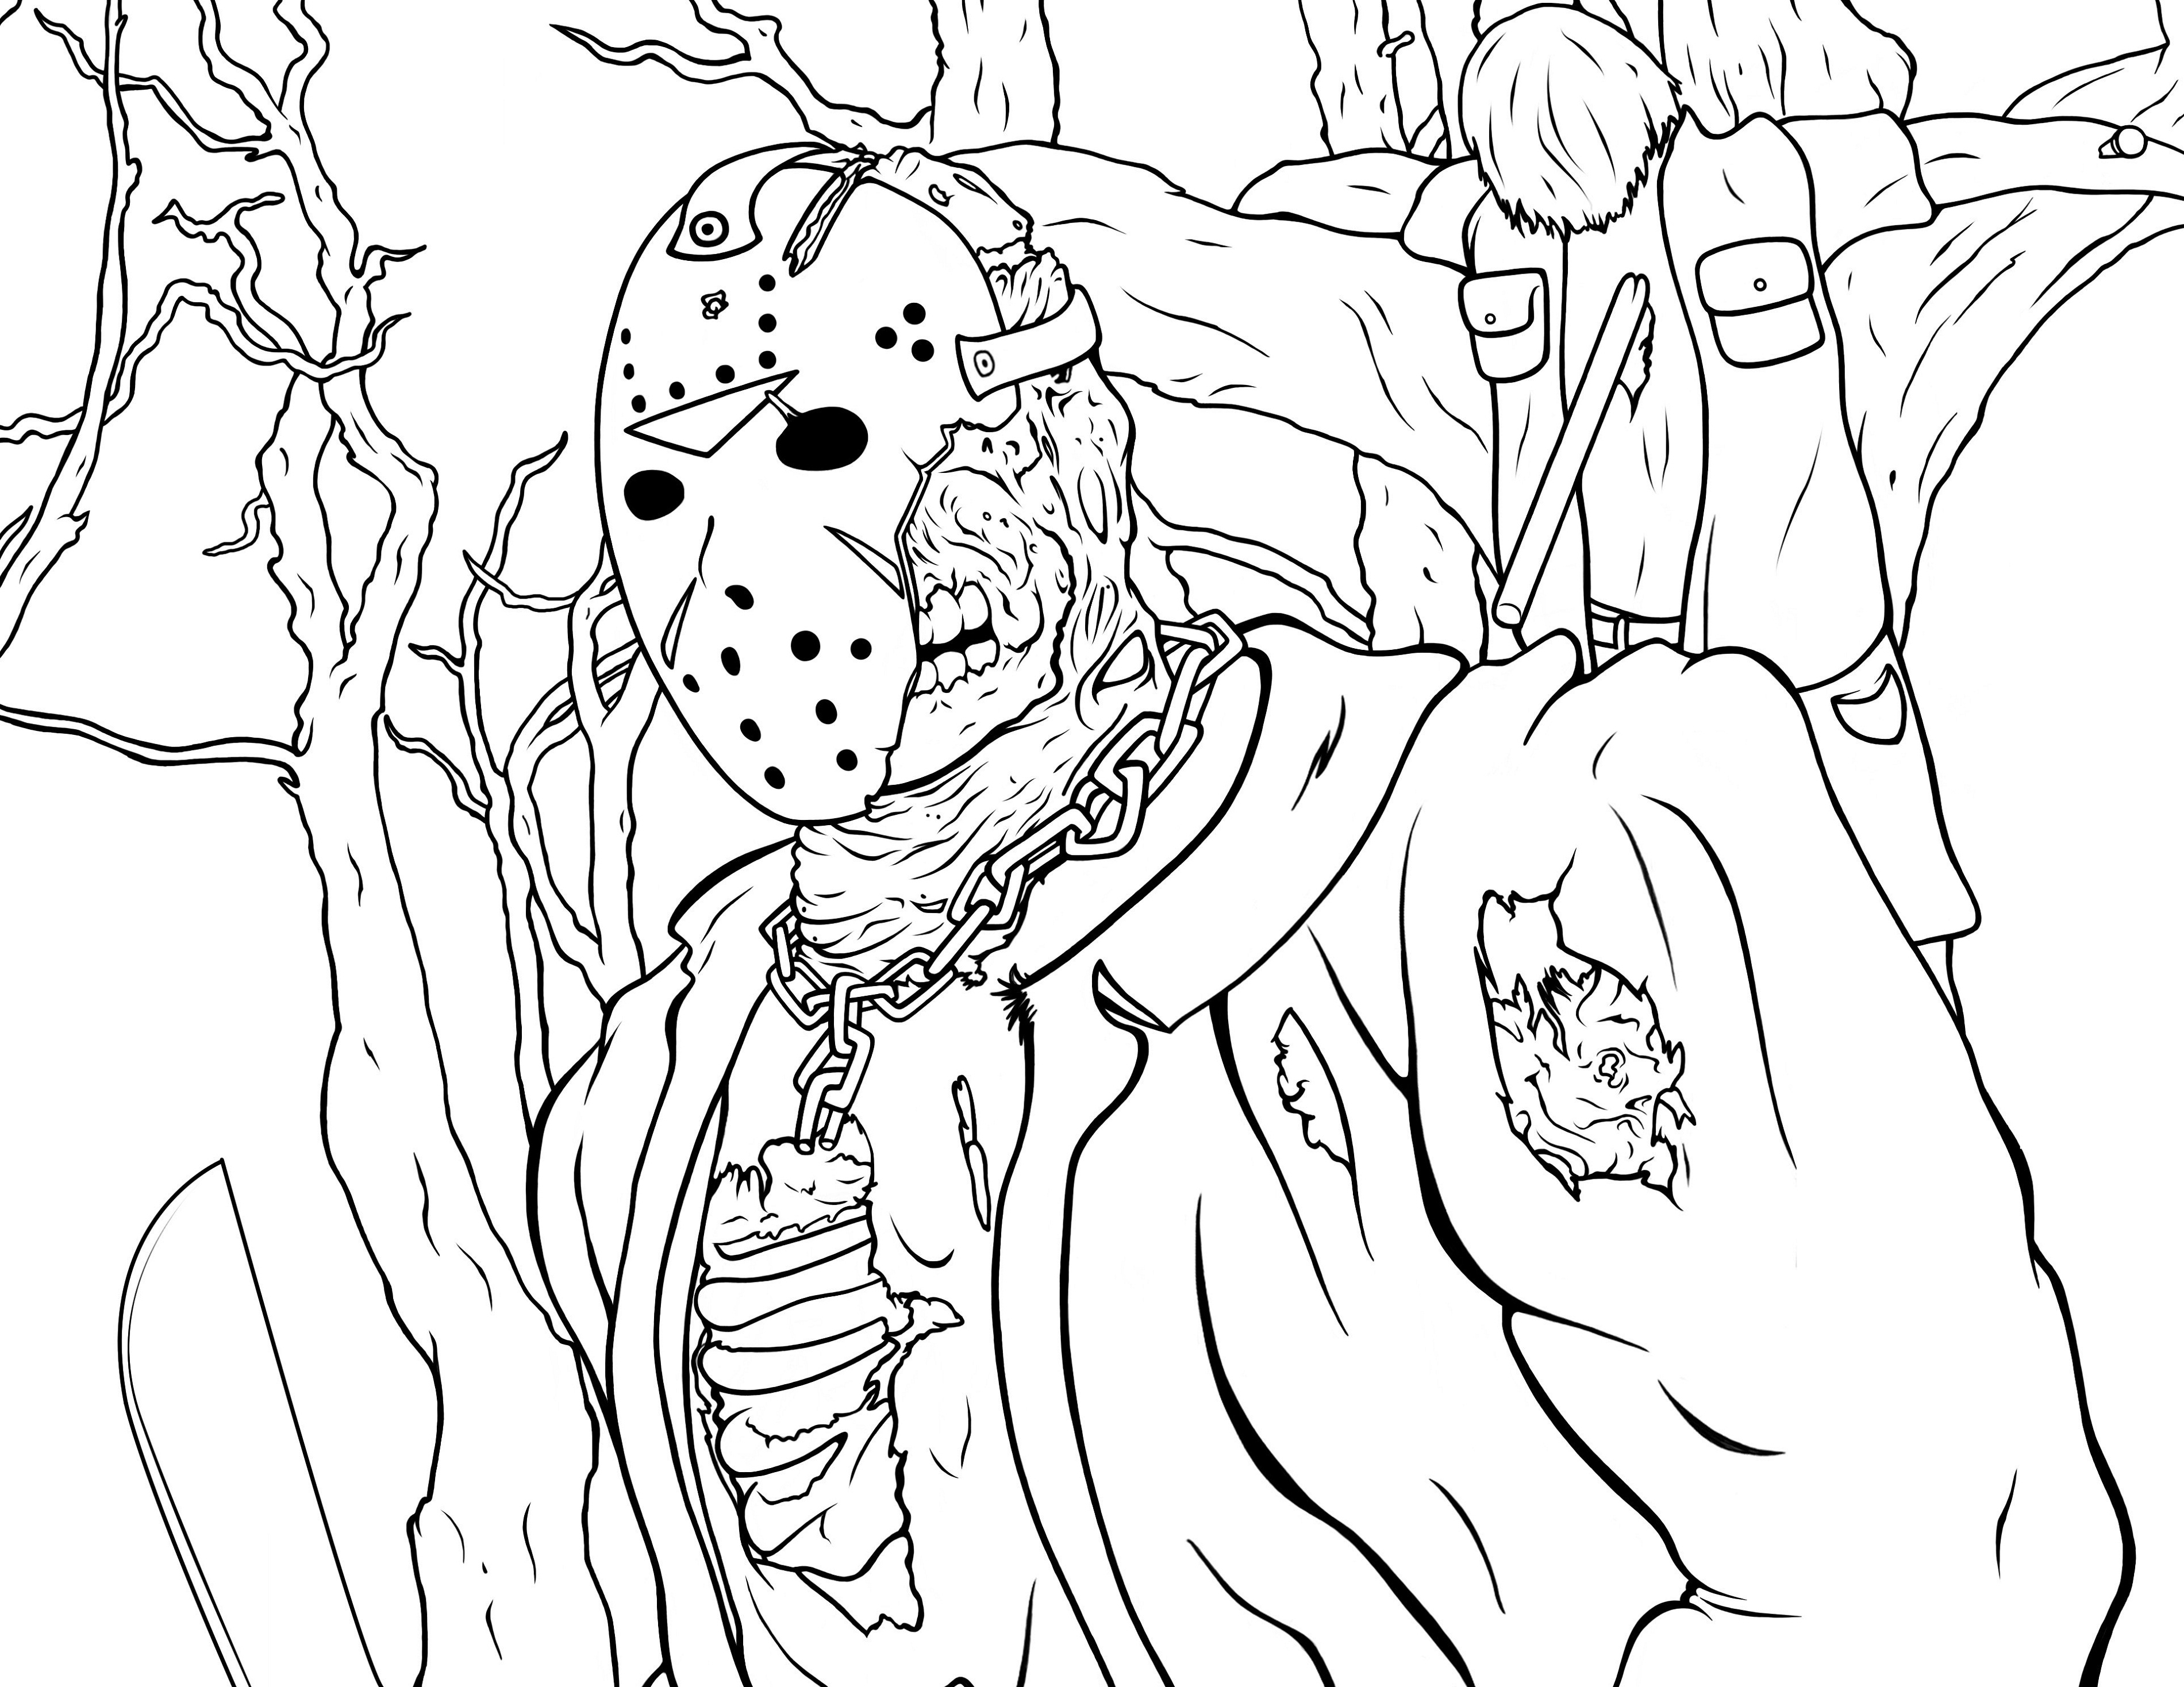 Jason Coloring Pages Friday The 13th